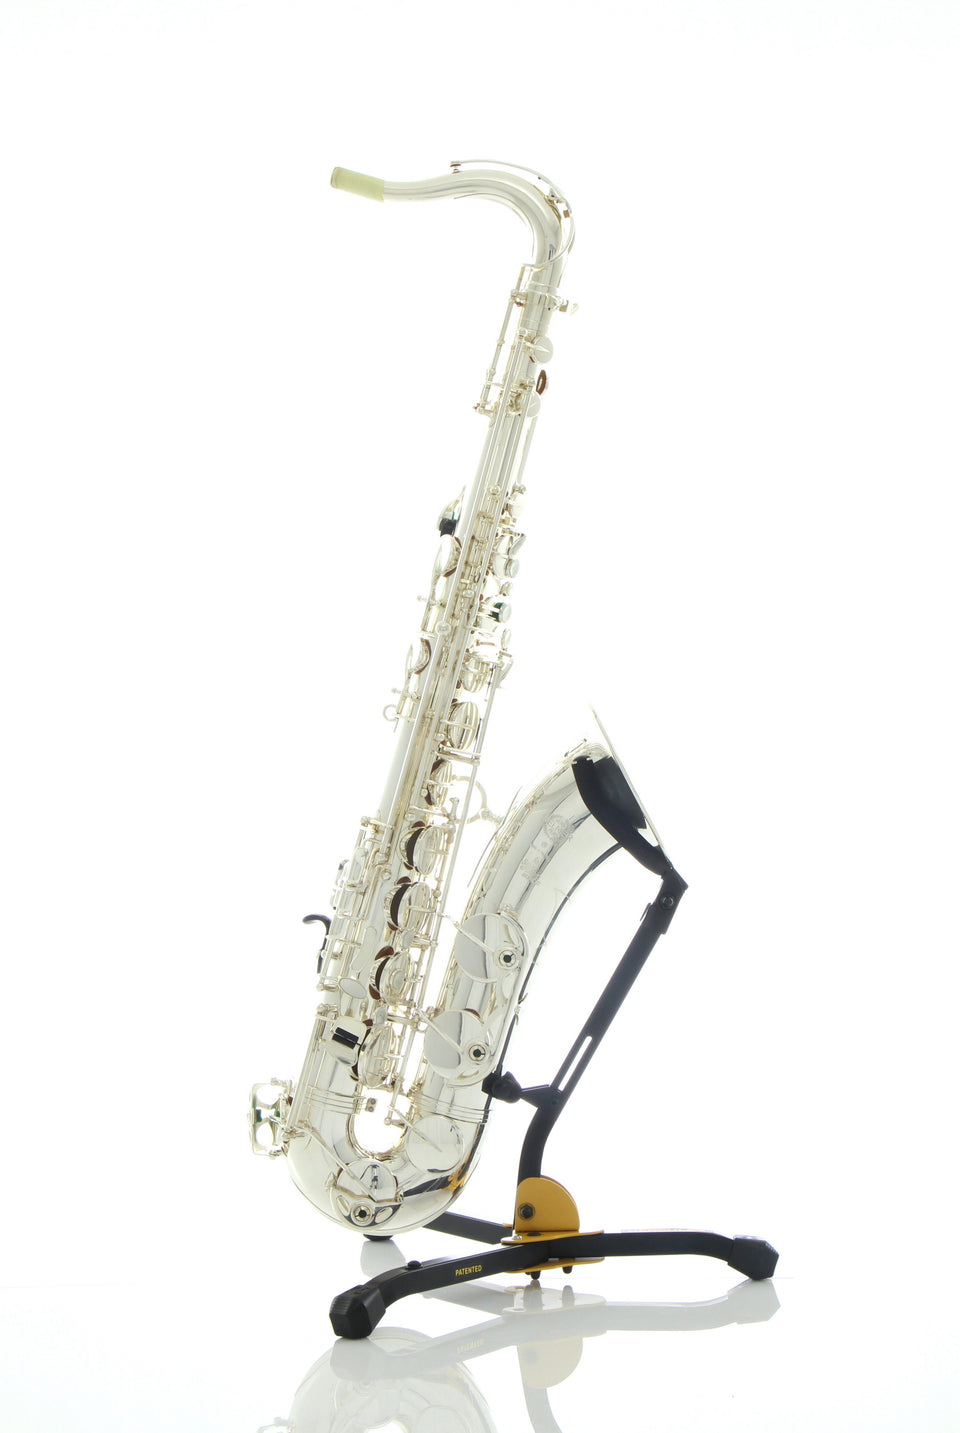 Selmer Super Action 80 Series II Tenor Saxophone - Silver Plate